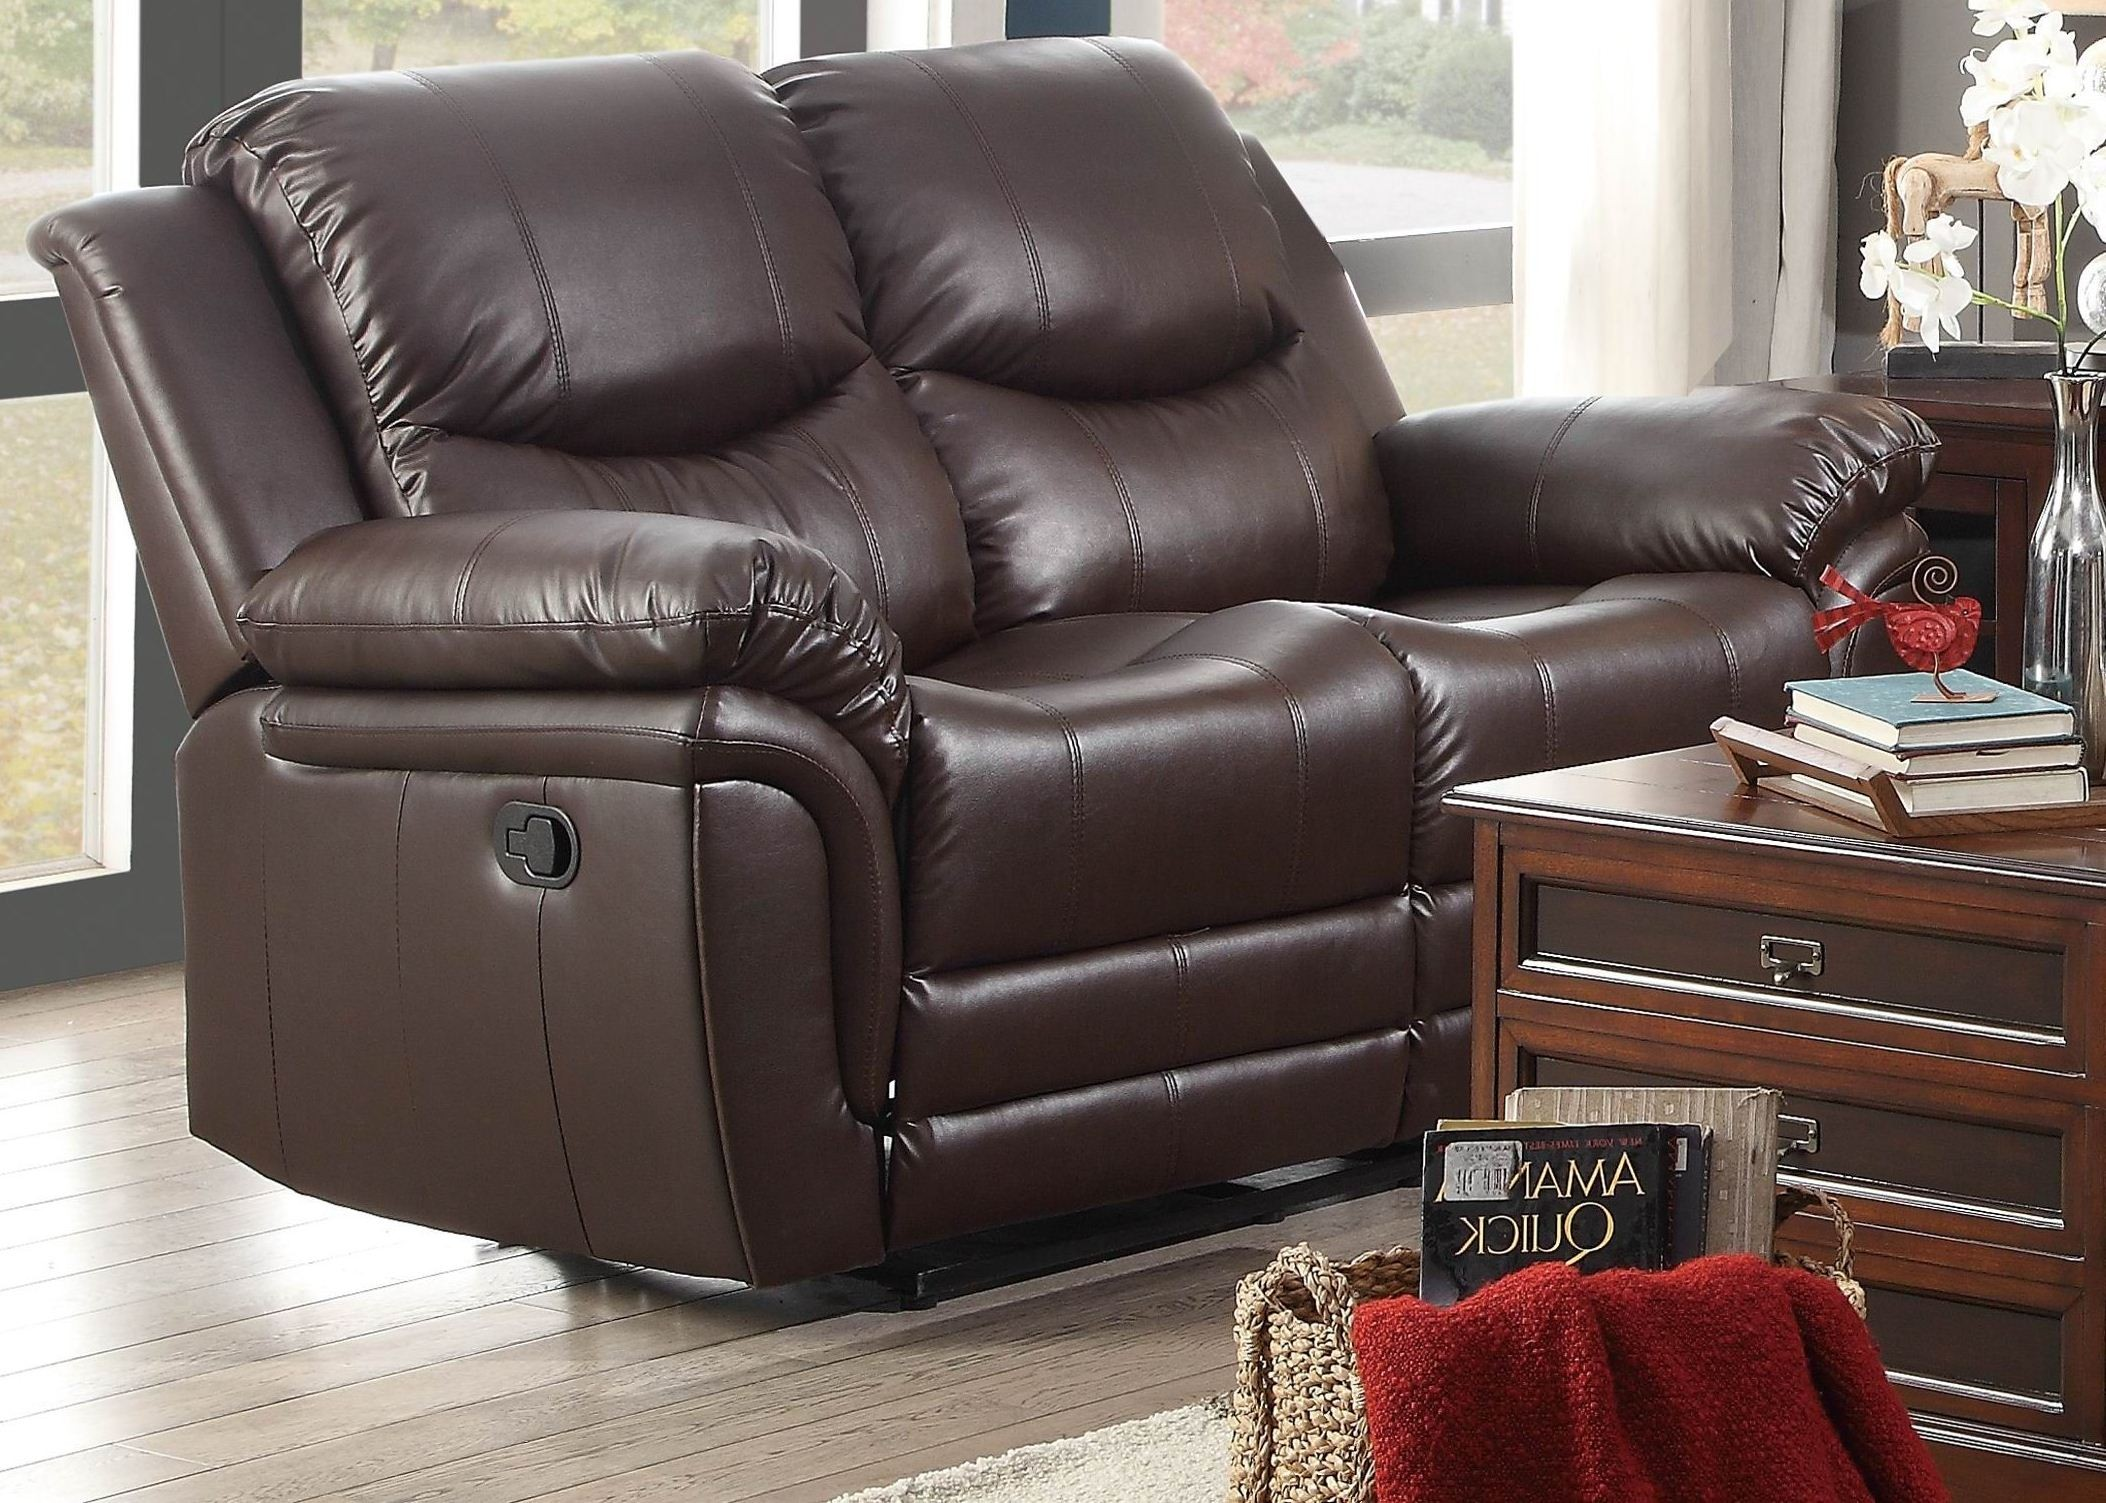 St Louis Park Double Reclining Living Room Set From Homelegance 8515brw 3 Coleman Furniture